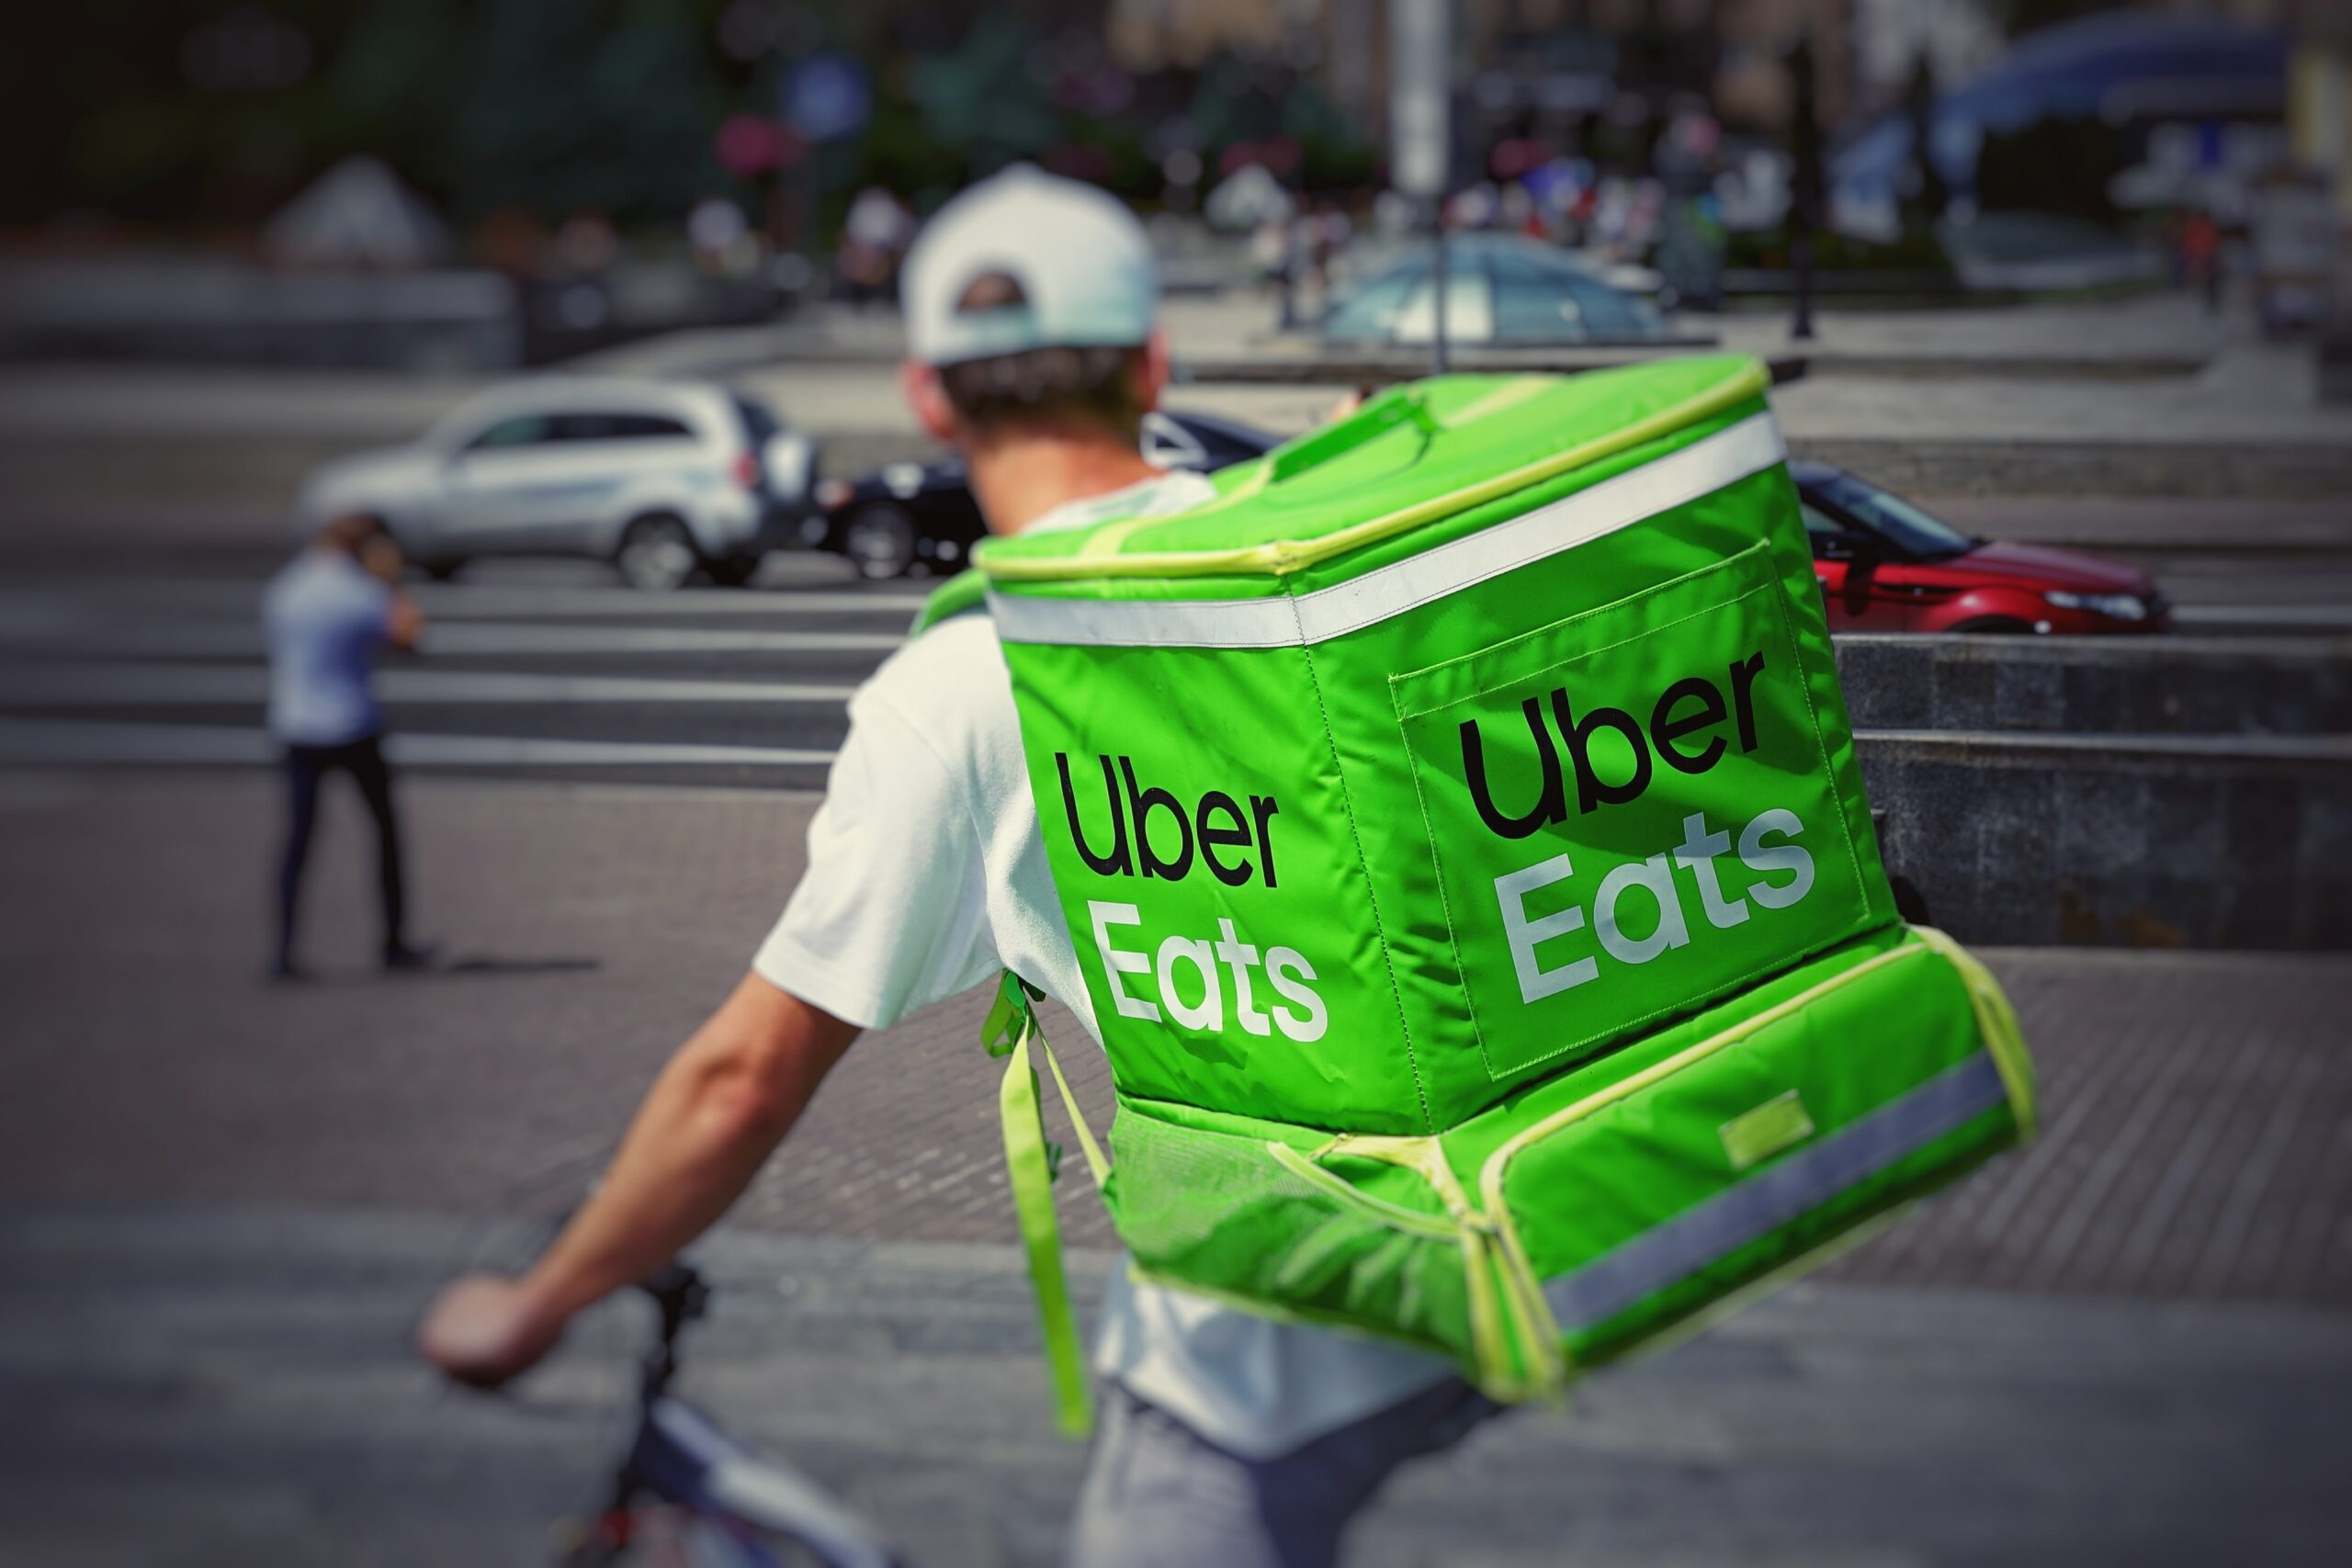 Uber Eats Delivery Courier on Bicycle